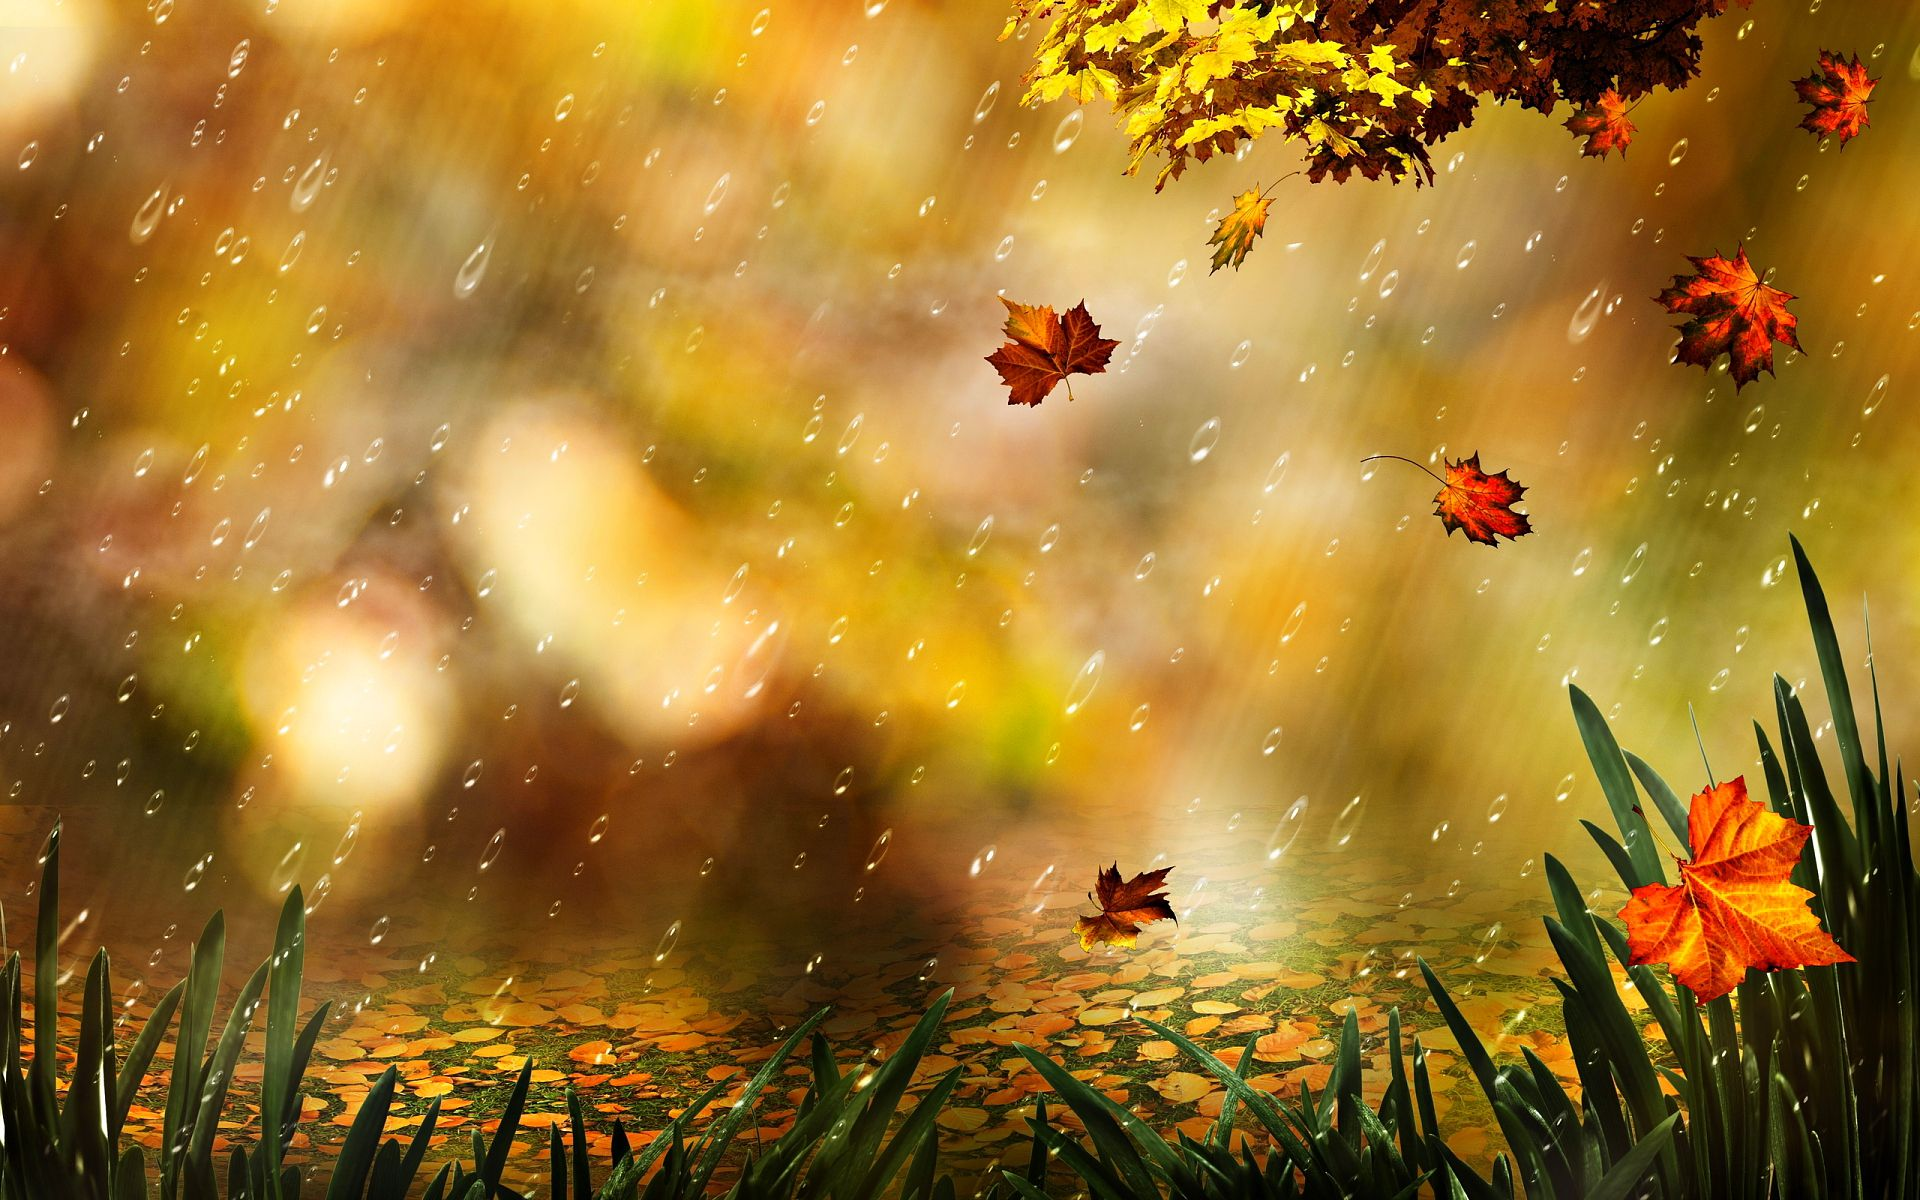 Abstract Rainy Autumn Rain wallpapers HD Comfort & Calm